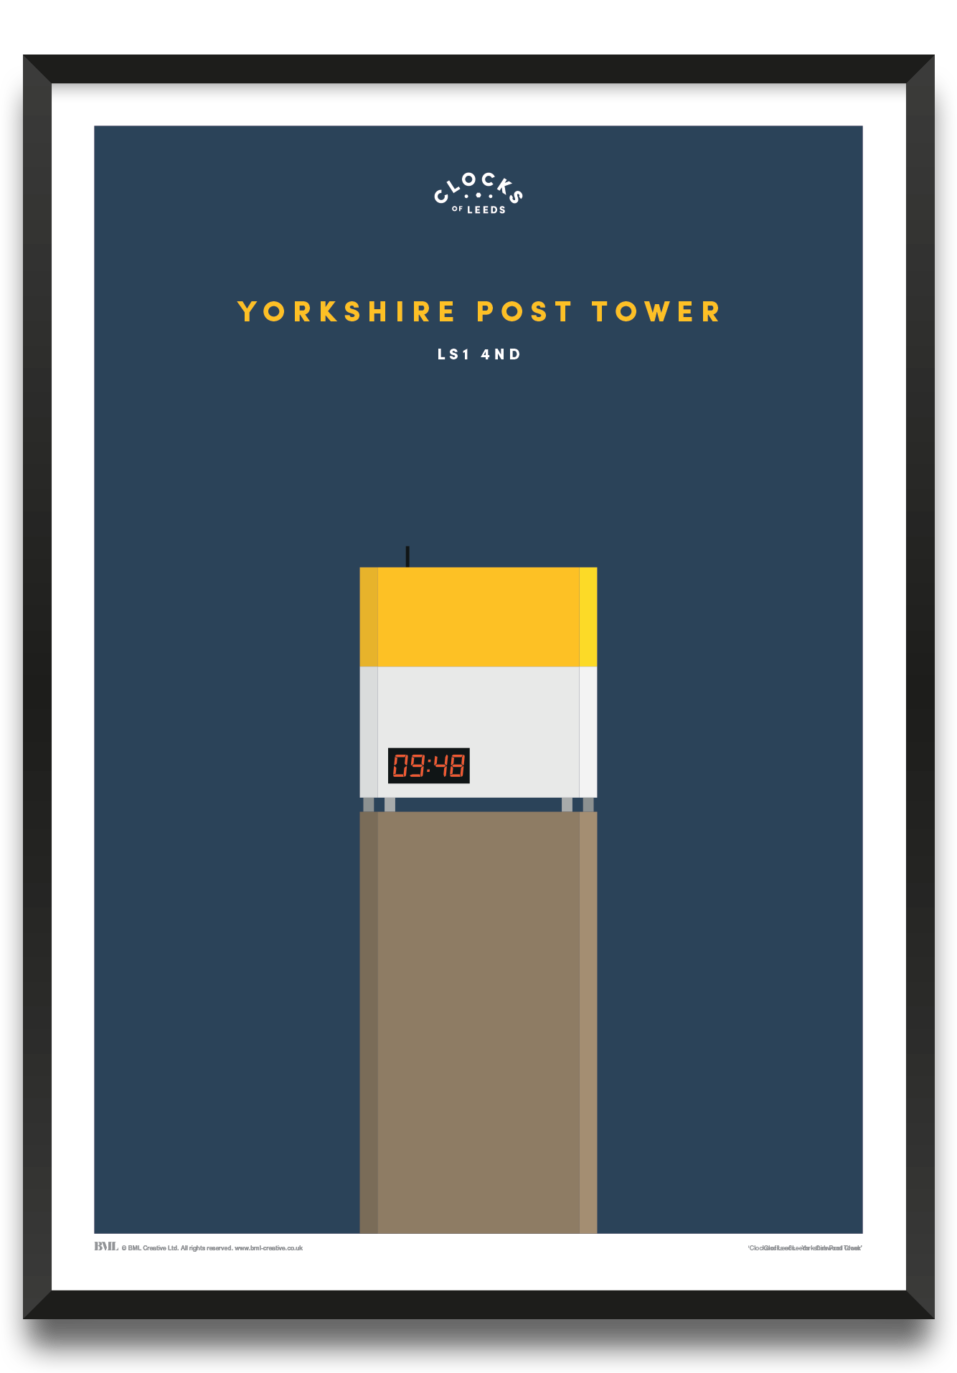 Yorkshire Post Tower, clocks of Leeds art print by Prints For Charity